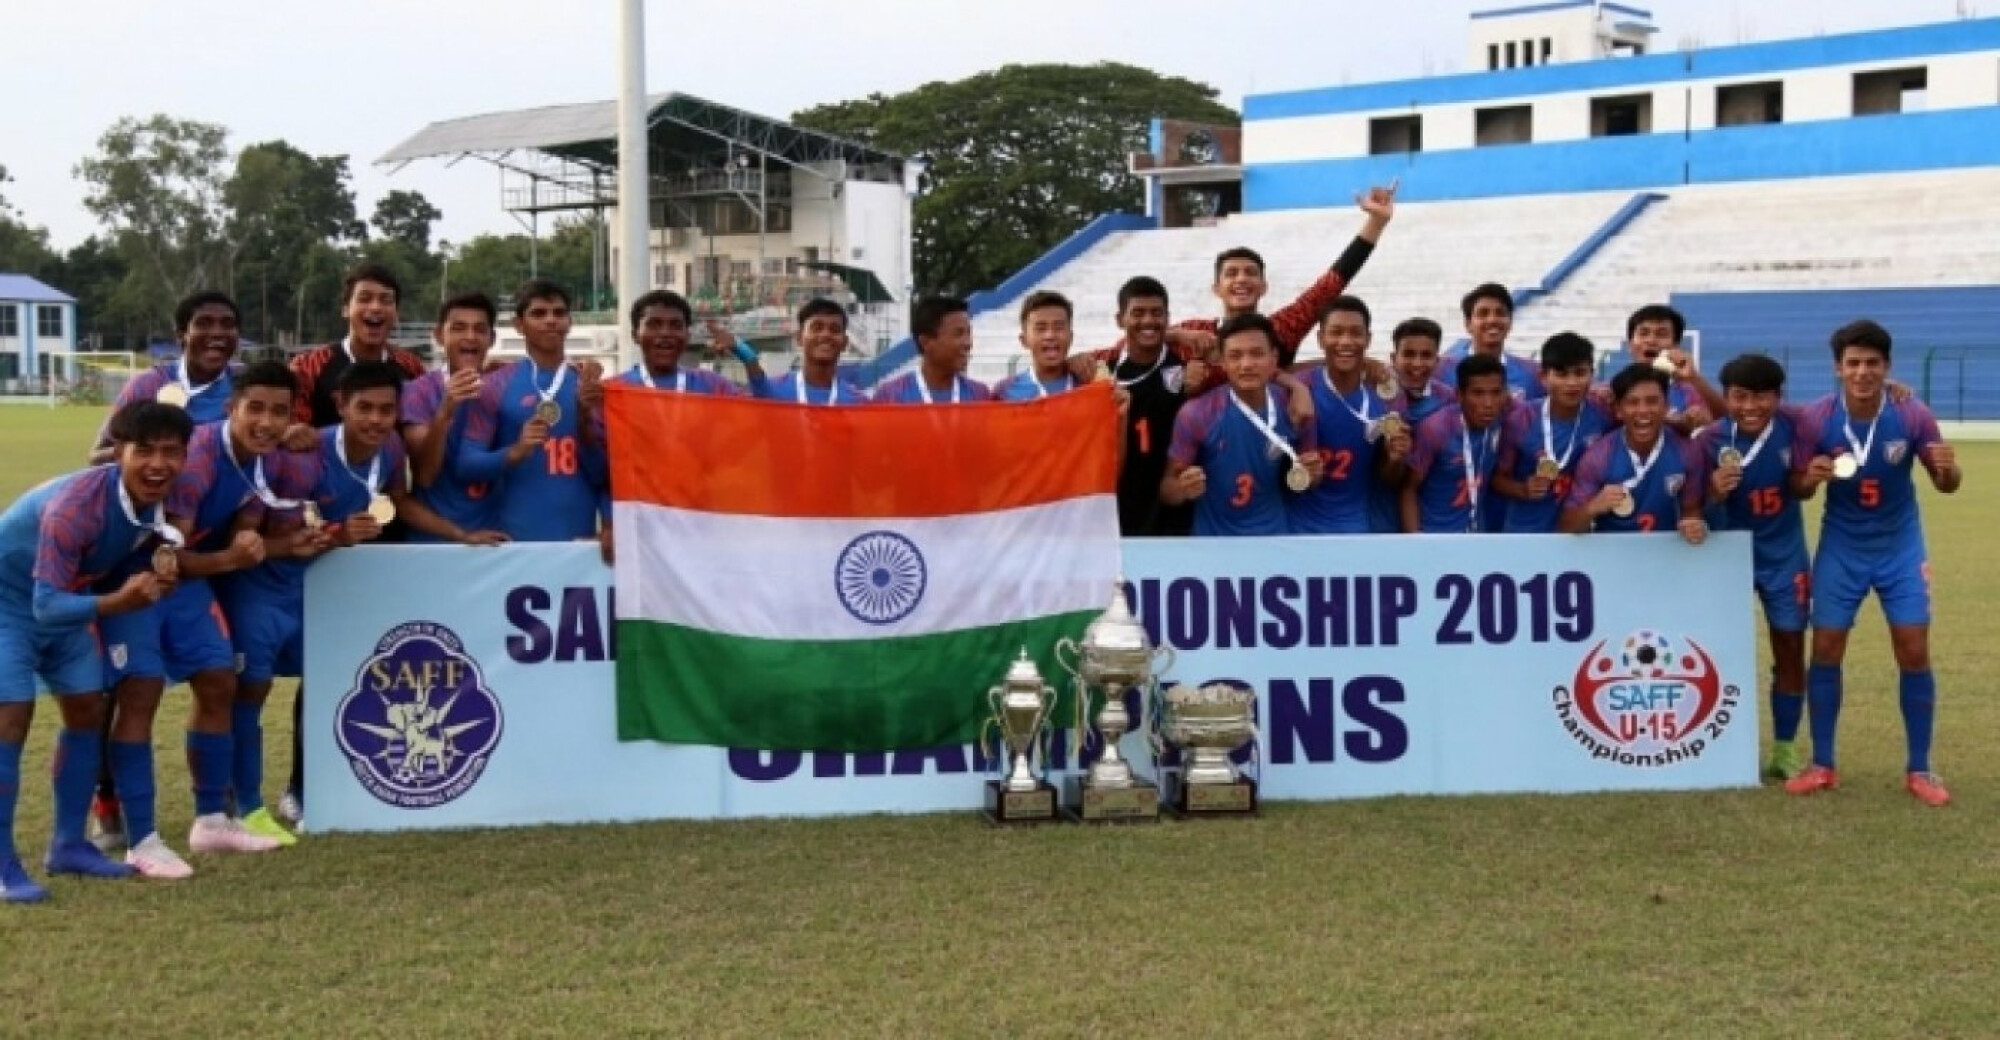 SAFF U-15 Championship 2019: India trounce Nepal to win the tournament